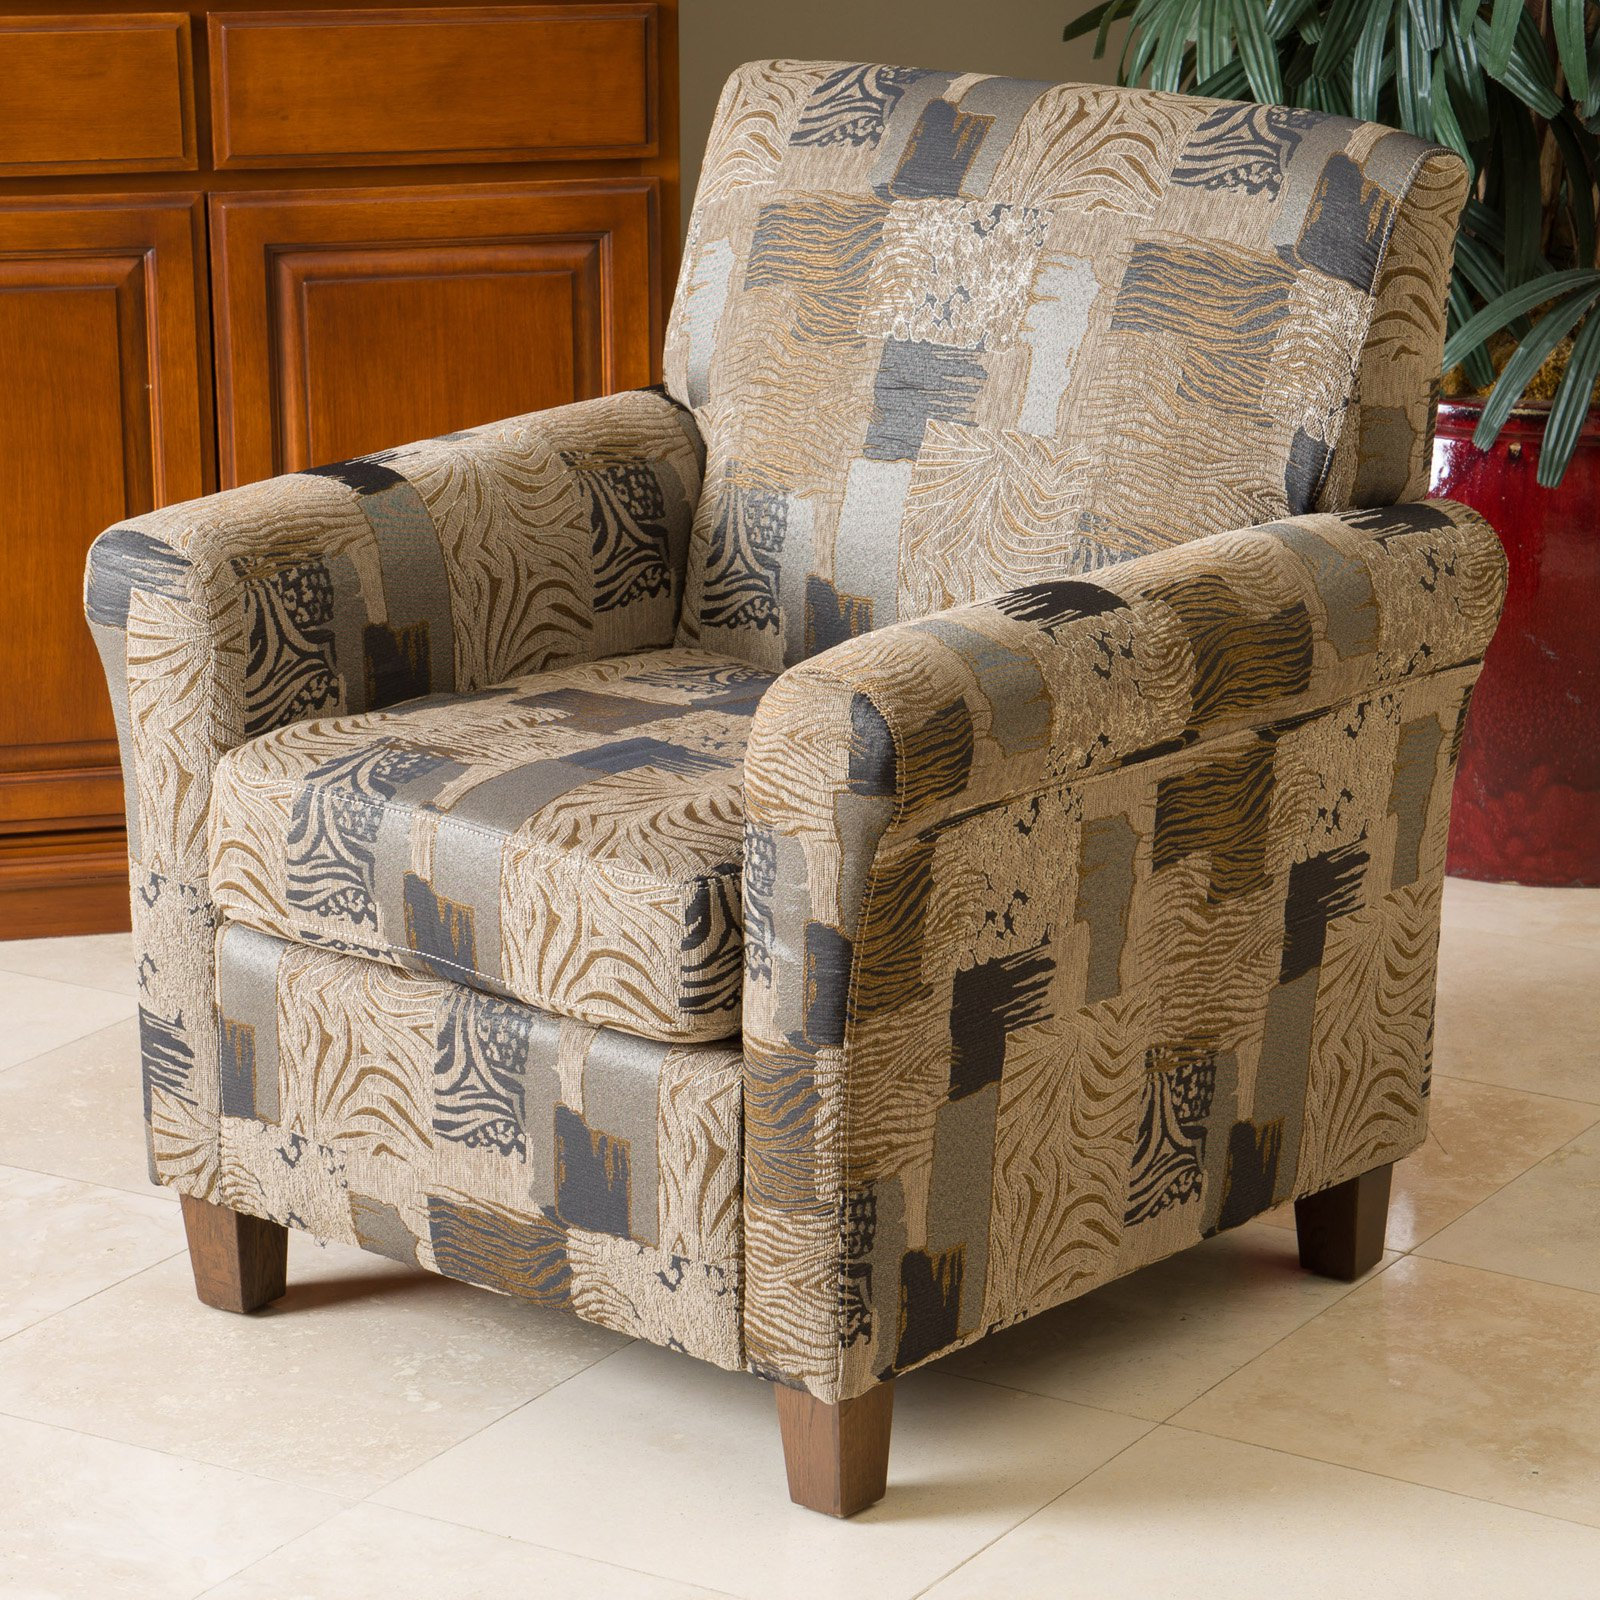 Best Selling Home Brunswick Animal Print Club Chair by Home Loft Concepts